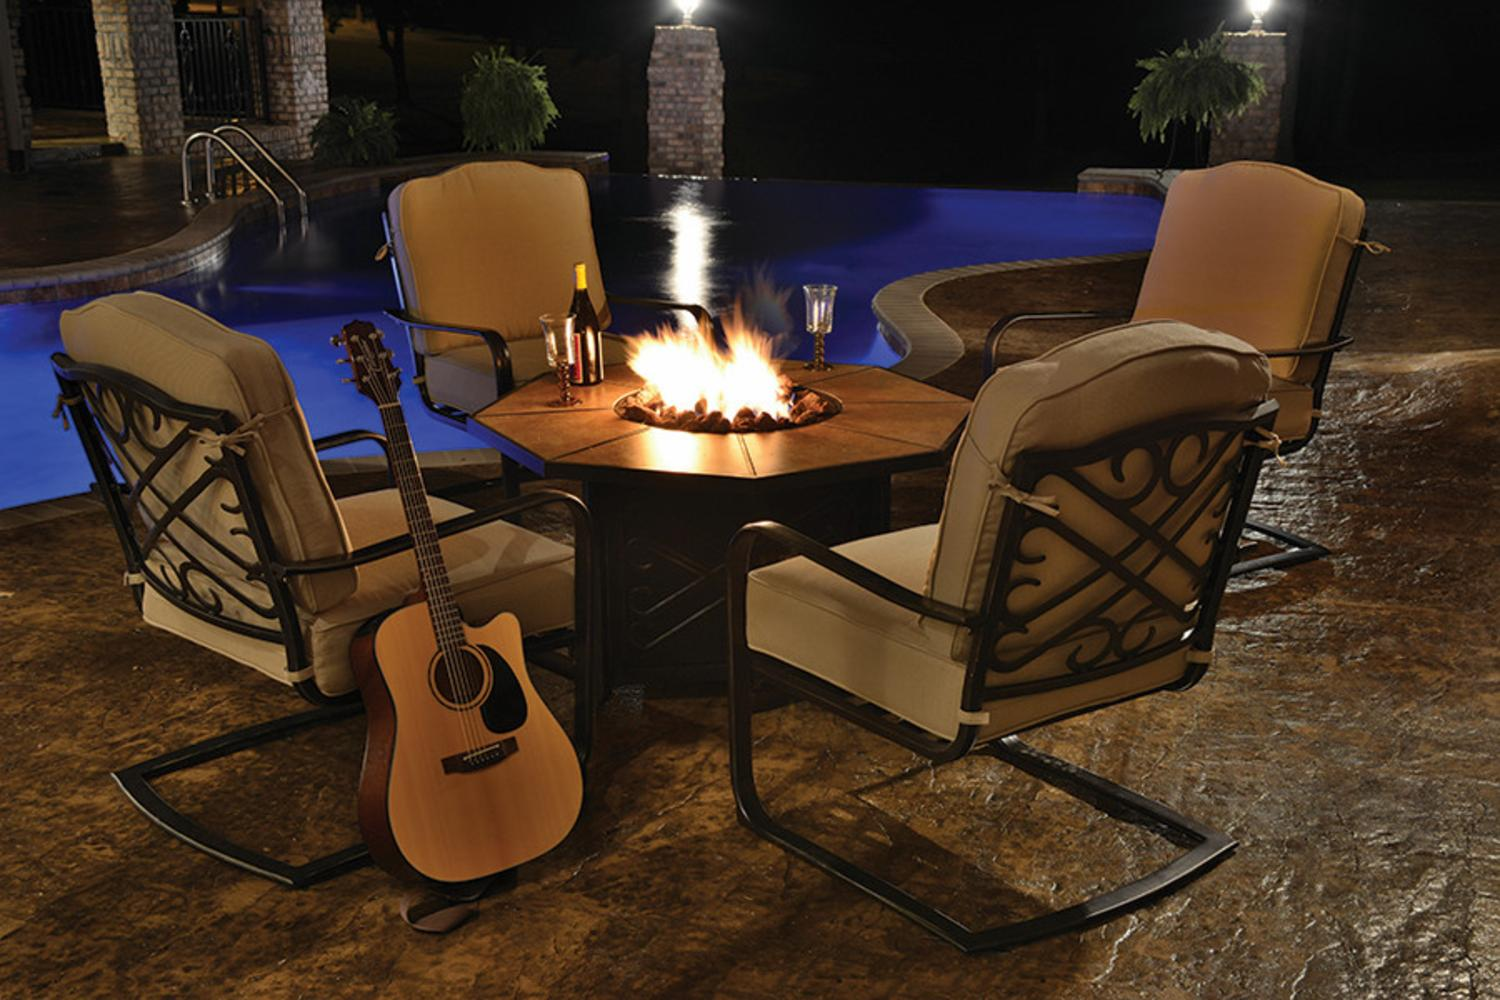 5 Piece Harmony Cast Aluminum Patio Chair And Gas Fire Pit Outdoor Furniture  Set